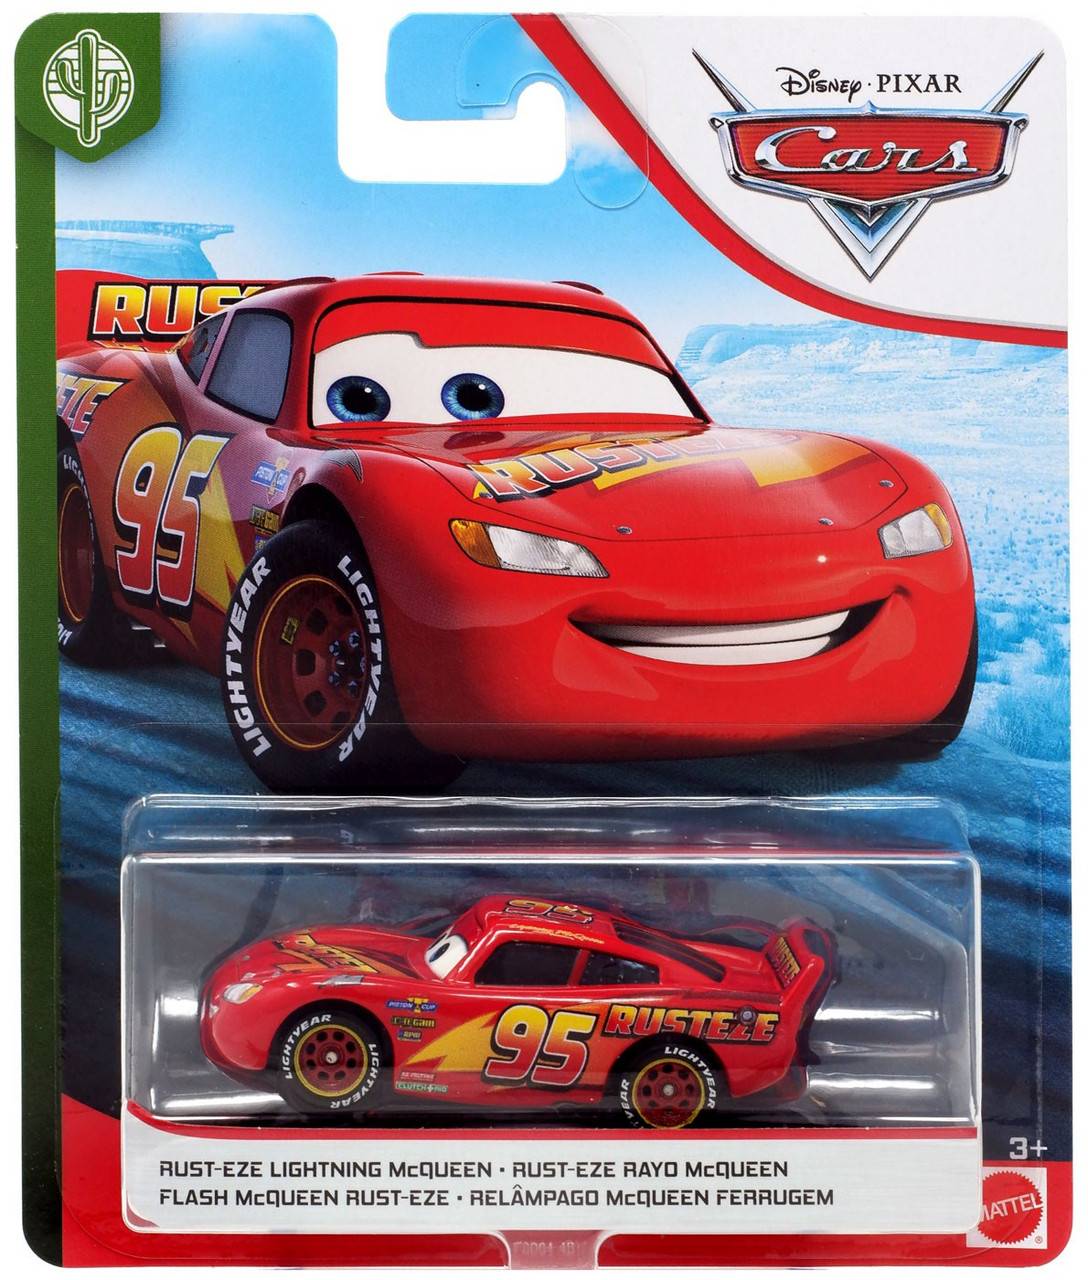 Disney Pixar Cars Cars 3 Copper Canyon Speedway Rust Eze Lightning